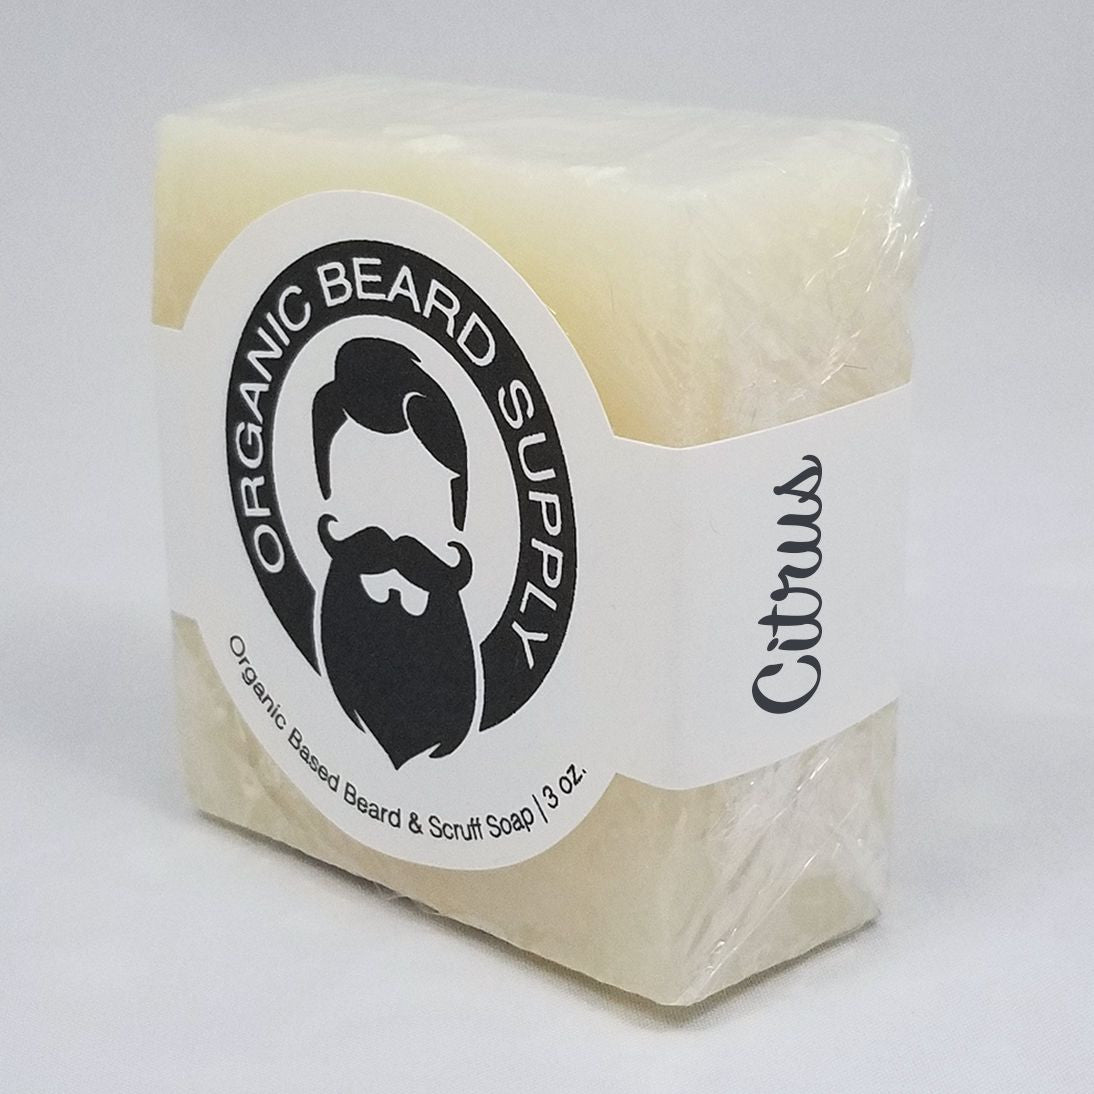 Lifestyle Line™ Citrus Beard and Body Soap